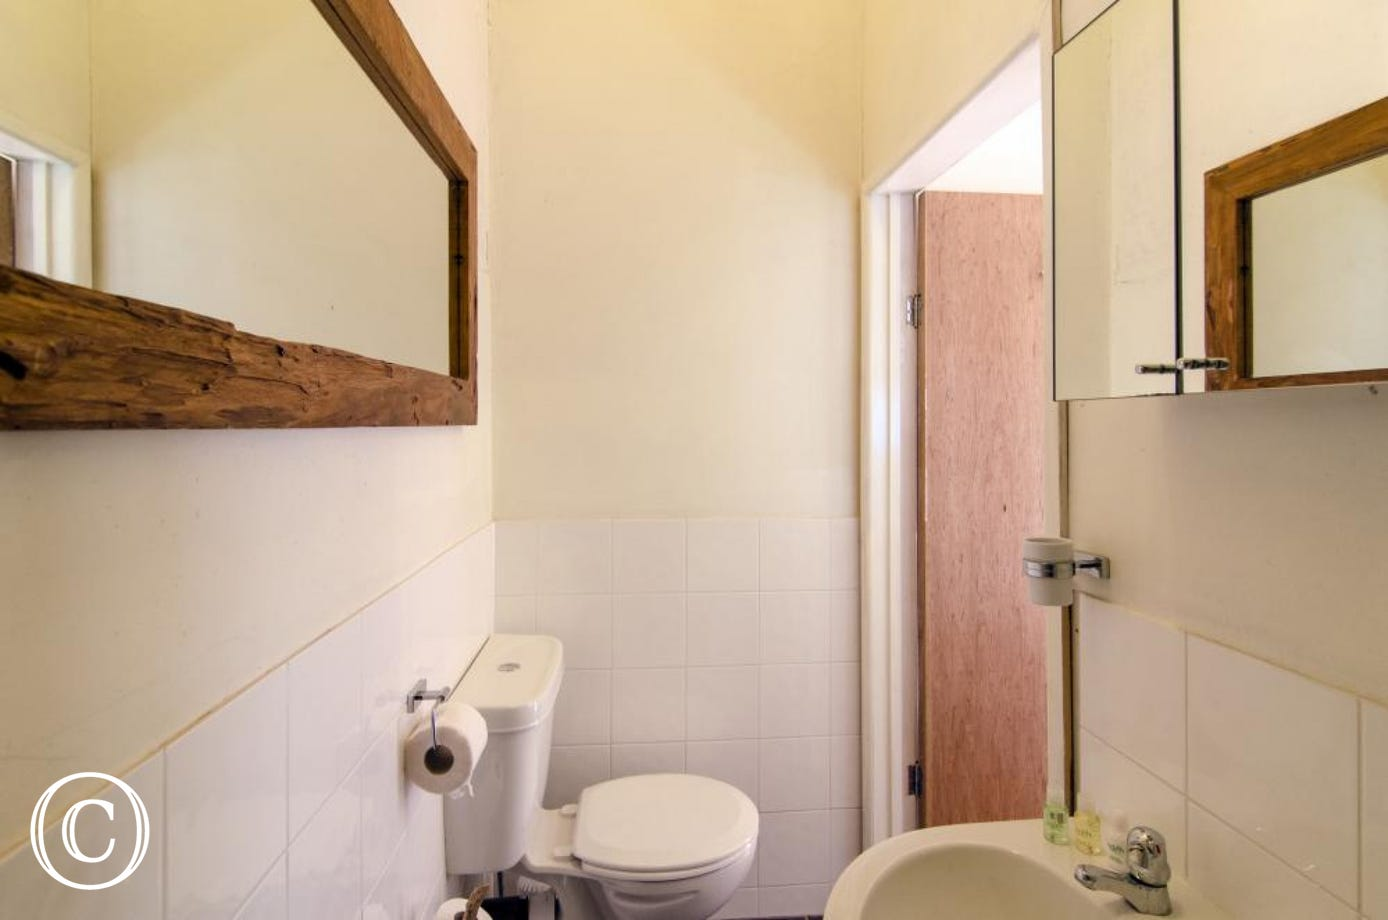 Galmpton Stable shower room toilet